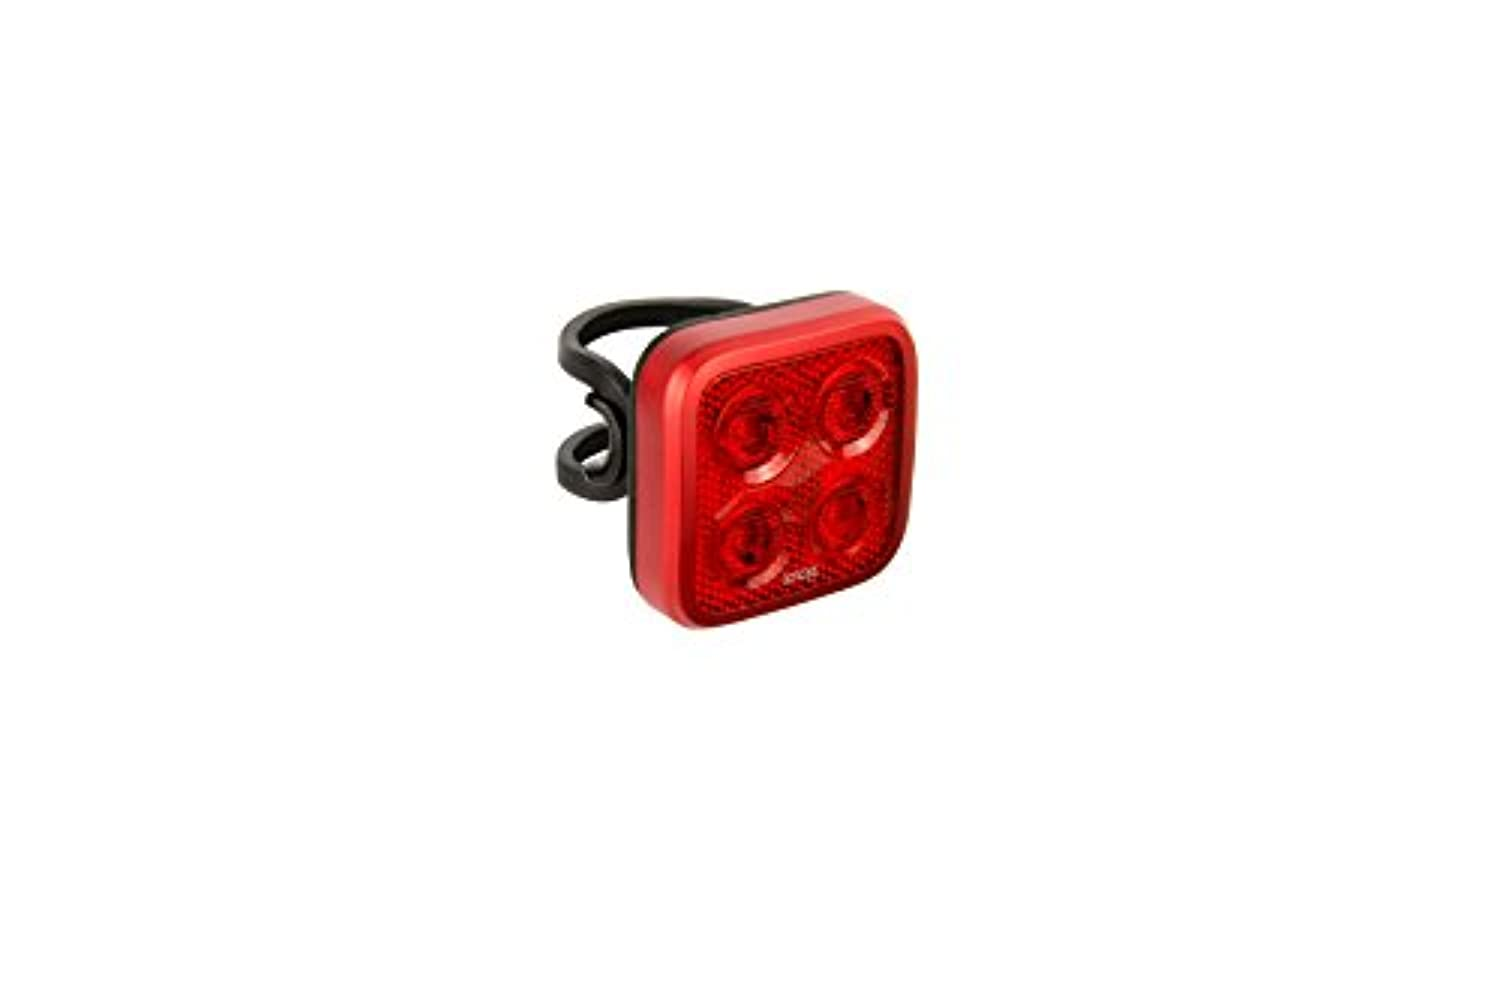 Knog Blinder Mob Four Eyes Rear USB Rechargeable Light, Red by KNOG